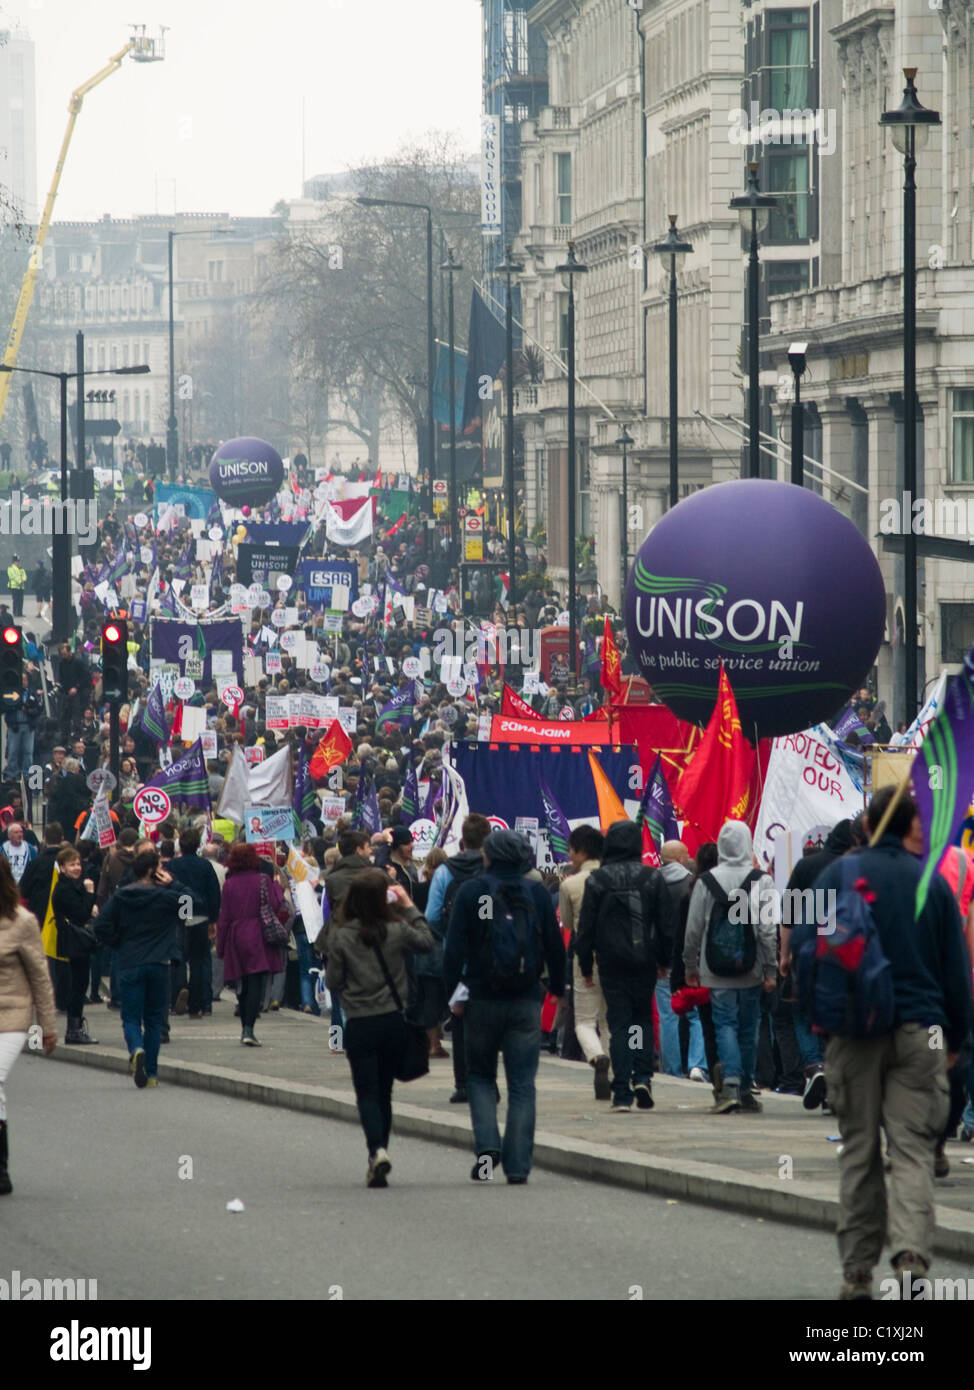 Protesters march down Piccadilly in London during the TUC organised protest against public spending cuts on 26 March - Stock Image